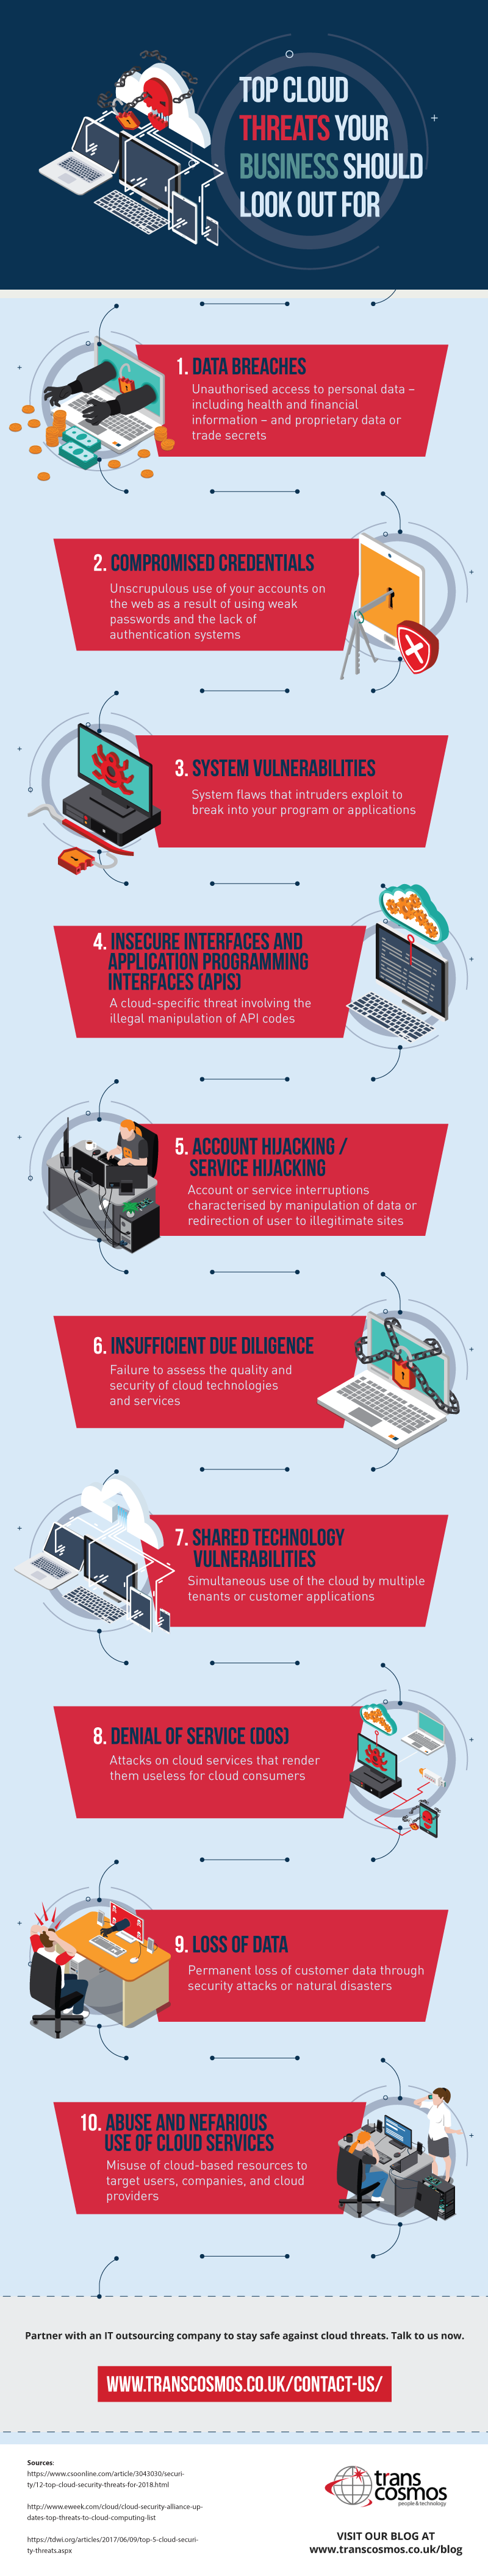 Top Cloud Threats Your Business Should Look Out For [Infographic]